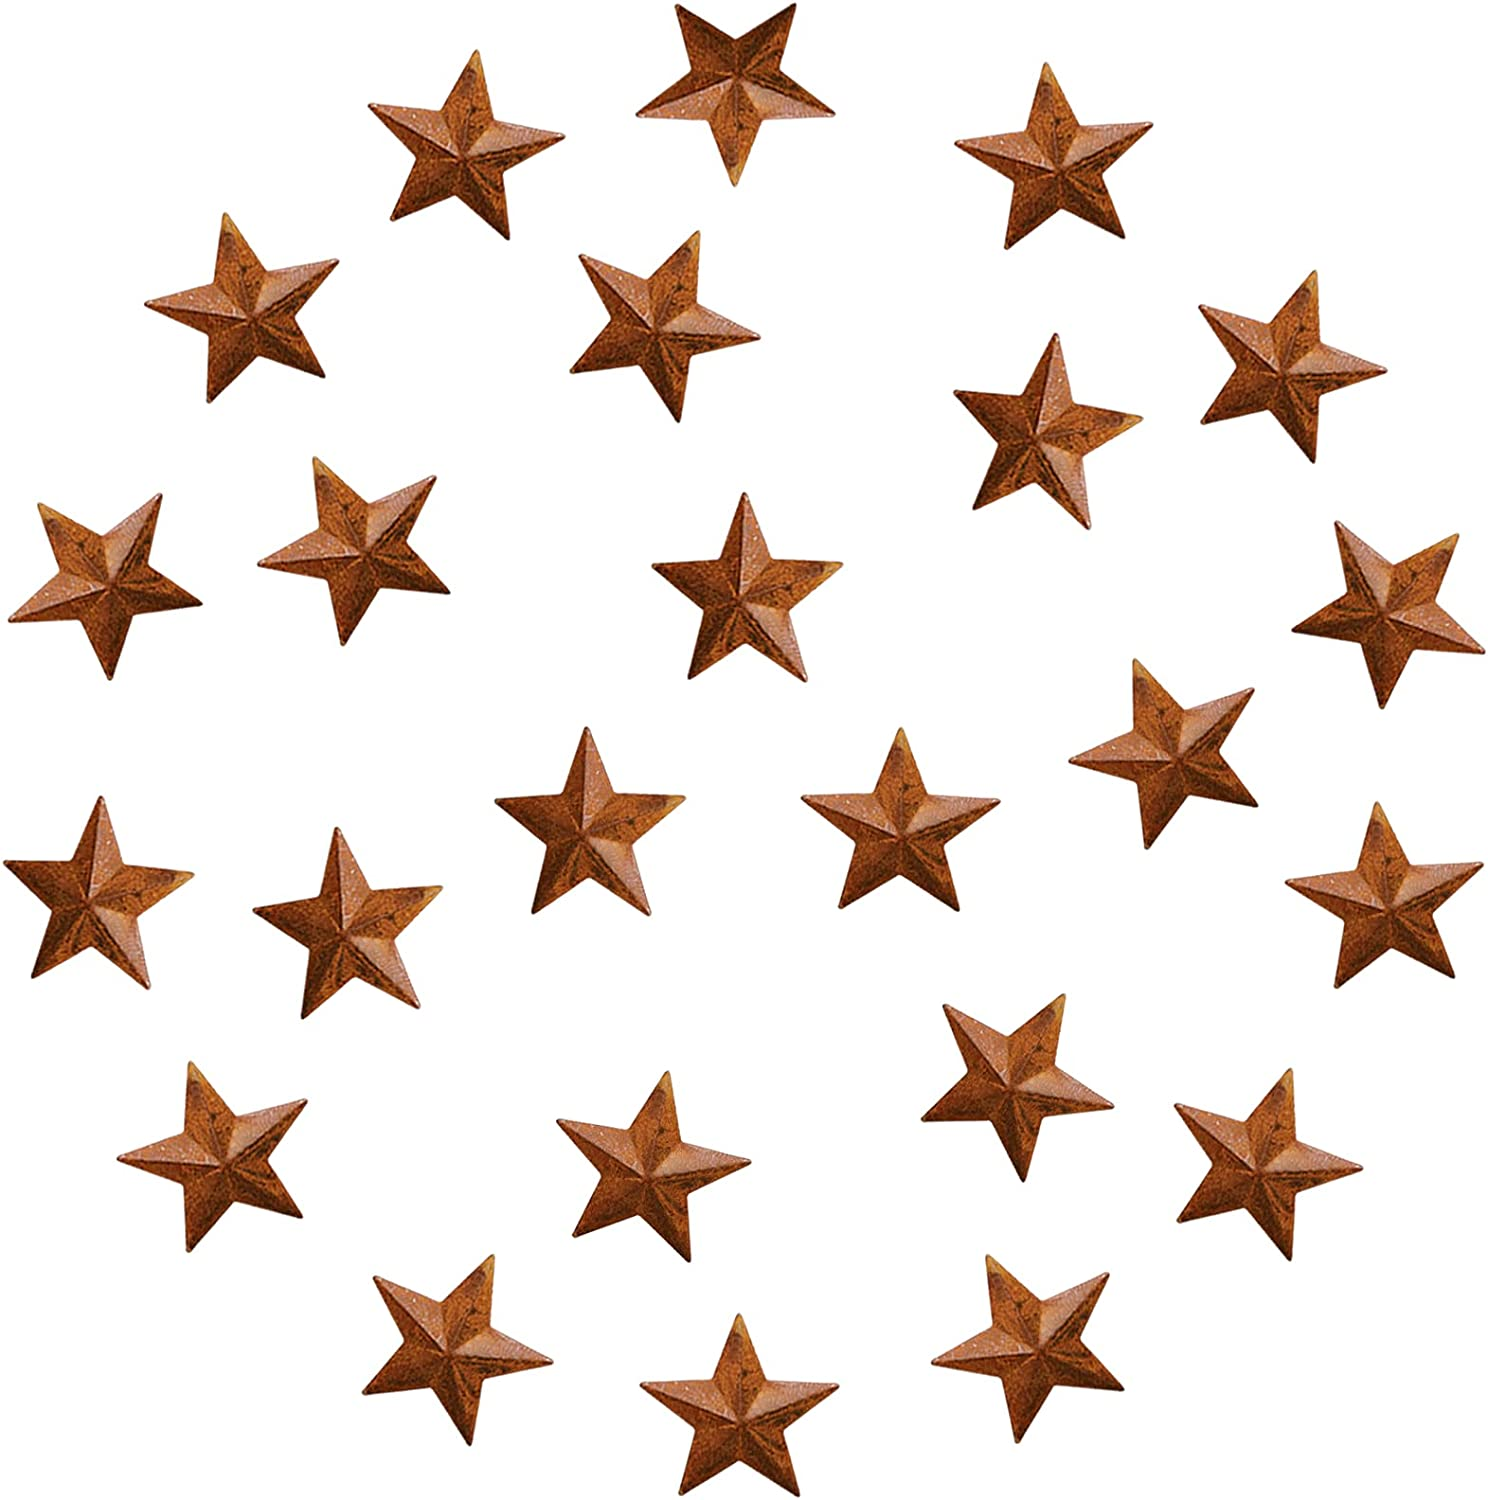 JIOSSNN Metal Barn Star – Star Wall Decor, Rusty Small Metal Stars for Crafts , Primitive Rusty Rustic Vintage Gift Western Country Home Farmhouse Wall Decor 2-Inch, Set of 24. (rusty)